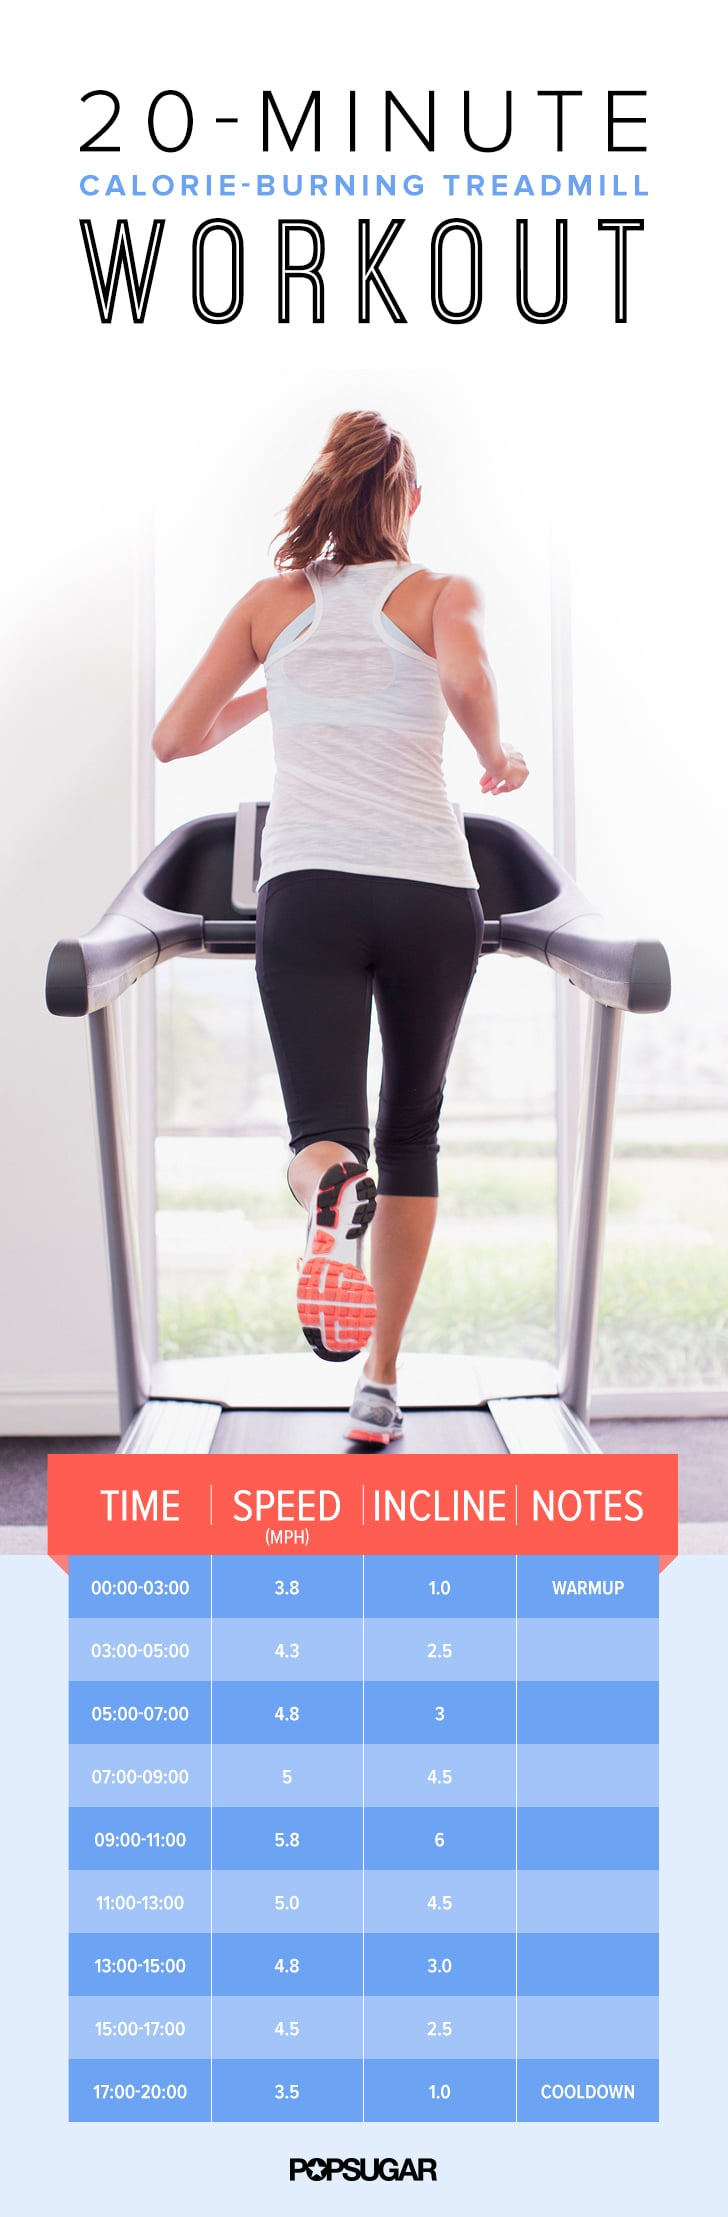 Before you head for your run, be sure to print this workout to bring to the  gym with you!